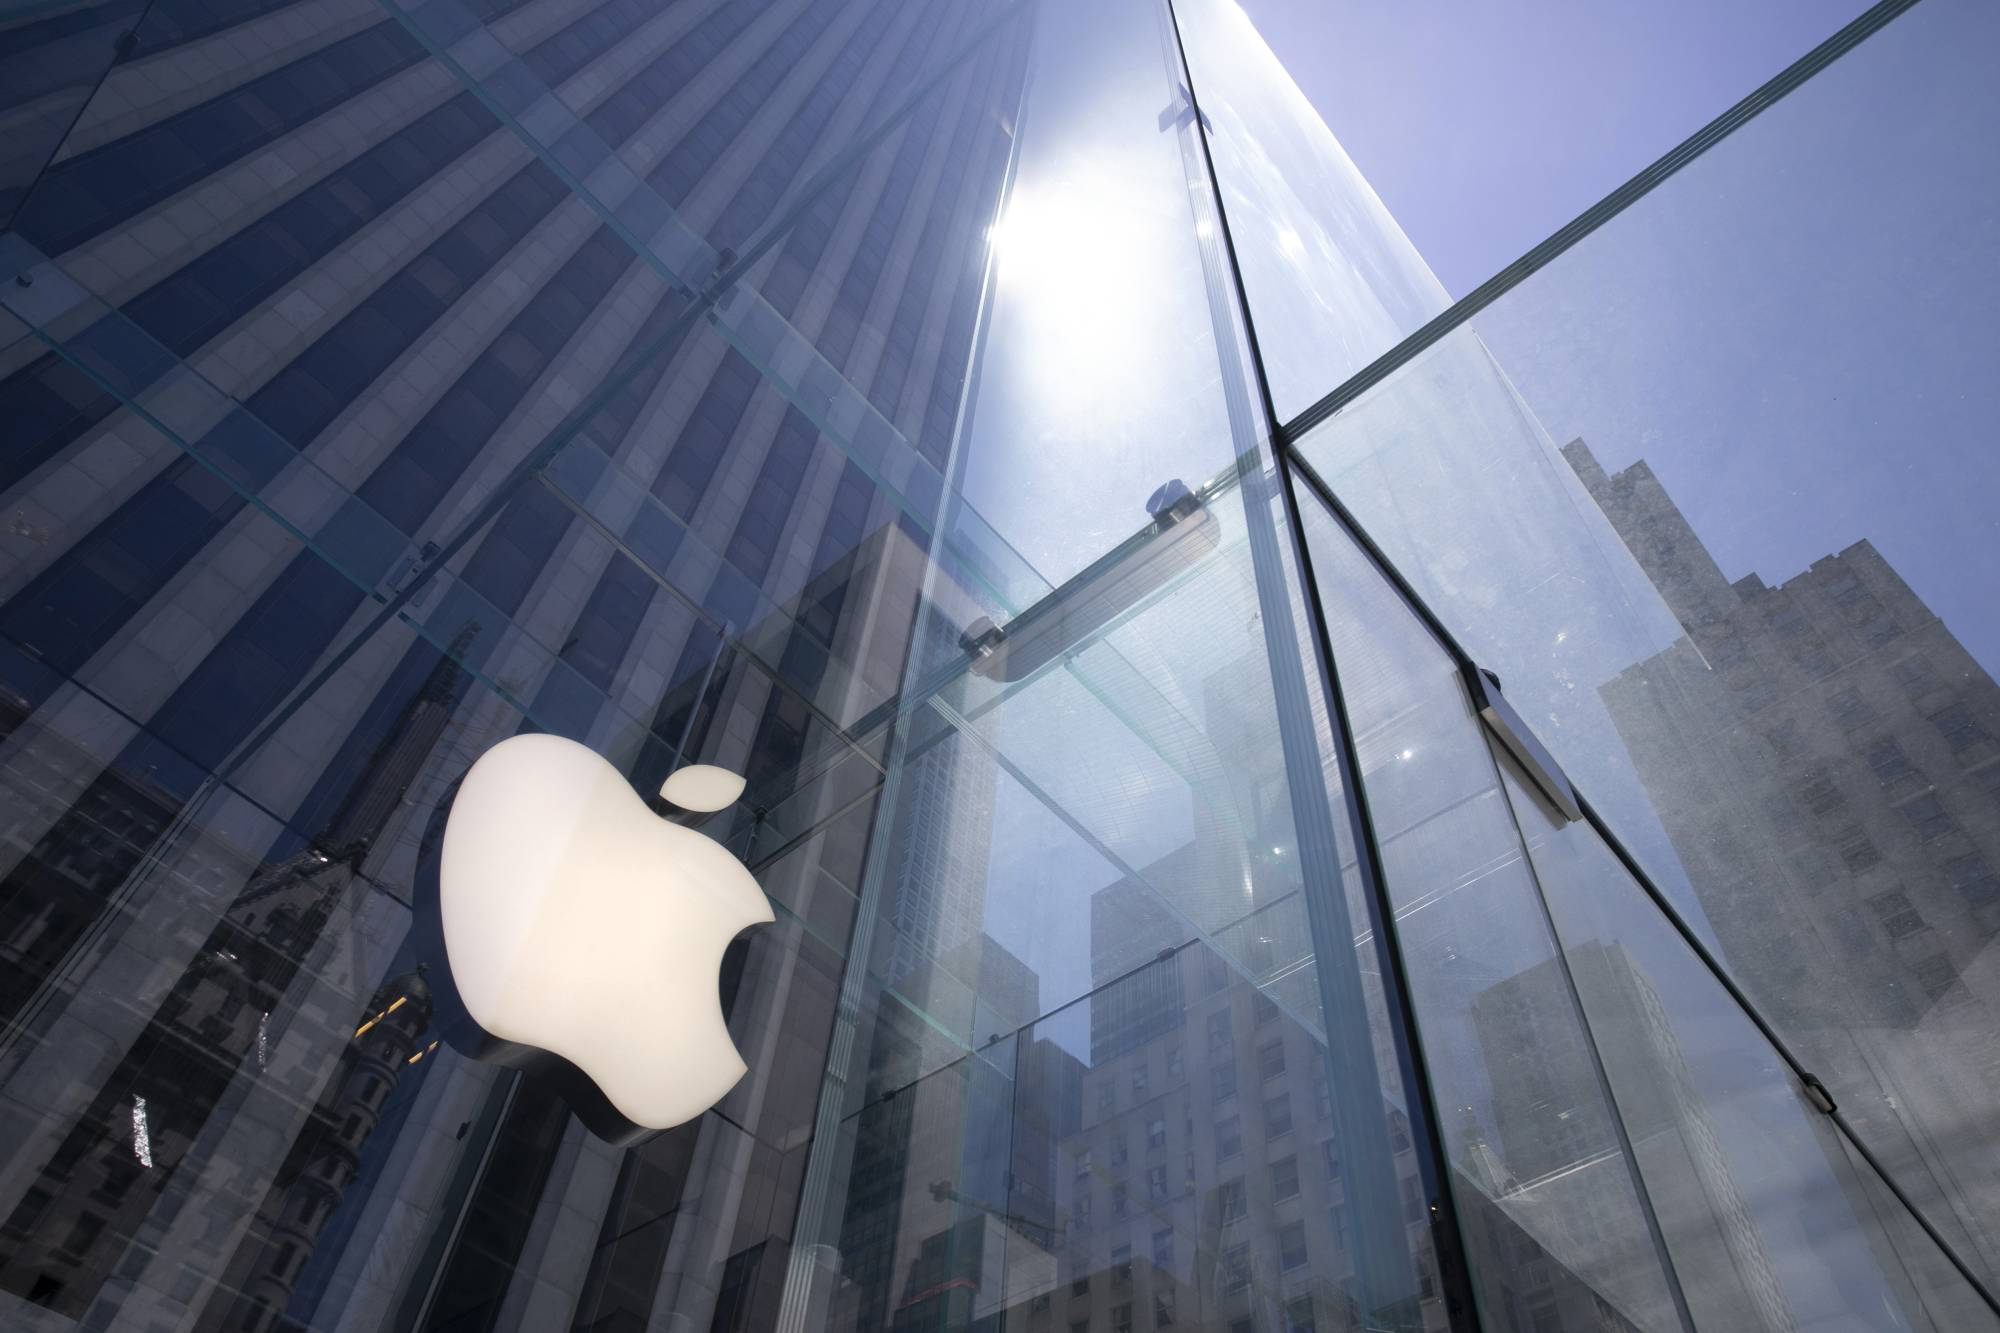 Apple's iPhone is a huge revenue driver for game creators in Japan, including established names like Square Enix Holdings Co., which gets 40 percent of its group revenue from smartphone games, and Bandai Namco Holdings Inc. | AP